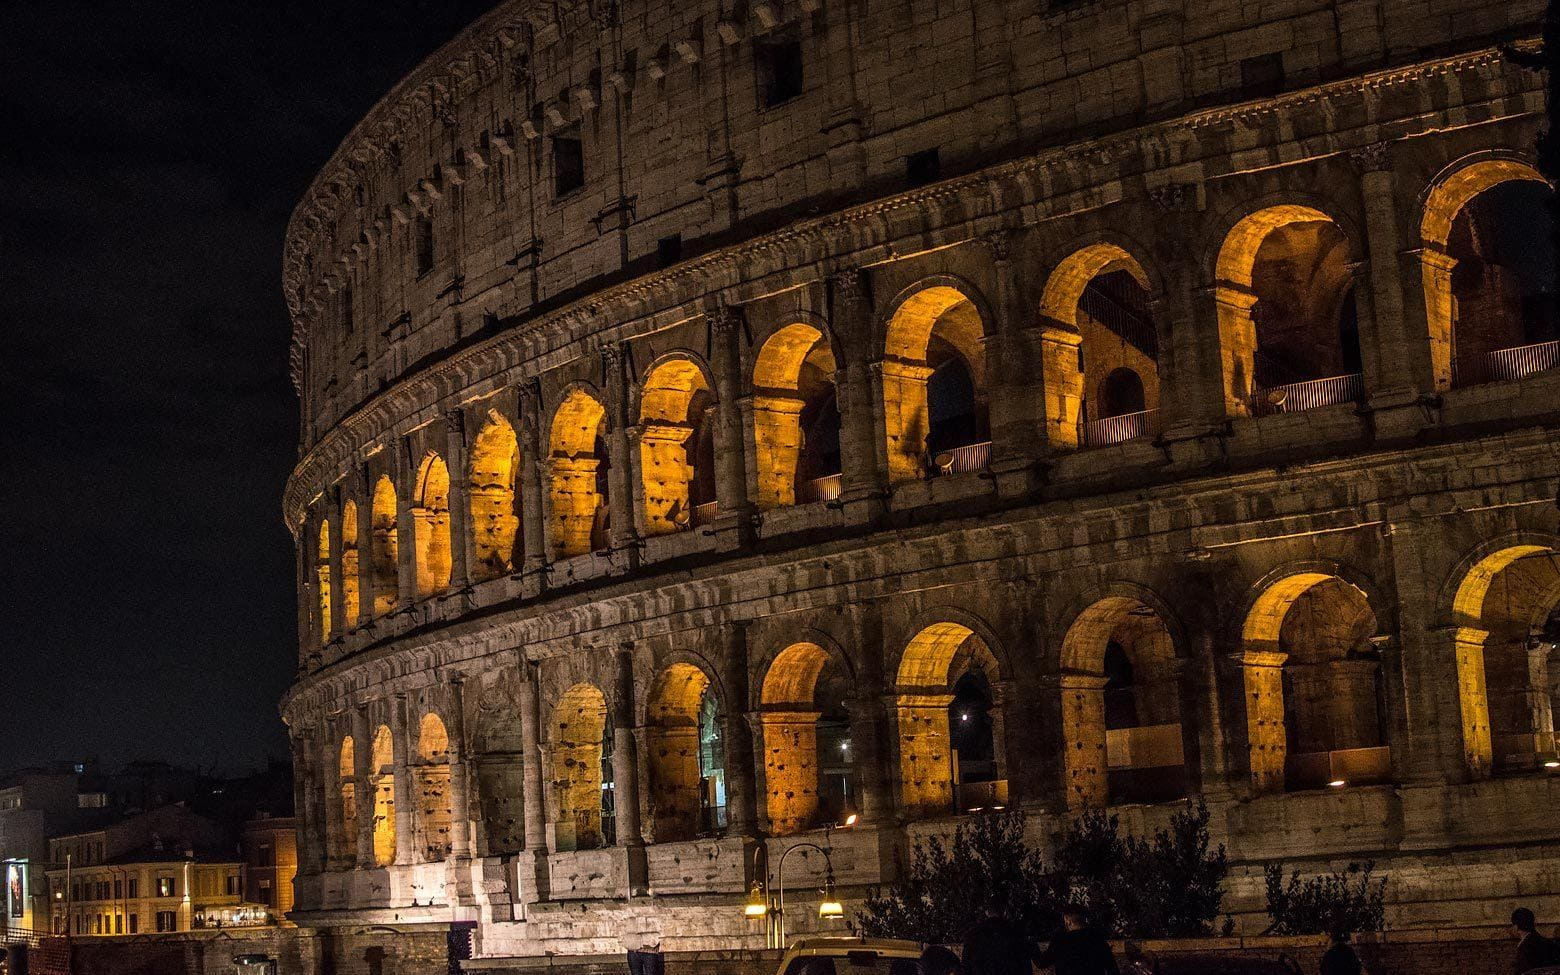 3 days in Rome itinerary day 3 - The Colosseum at night